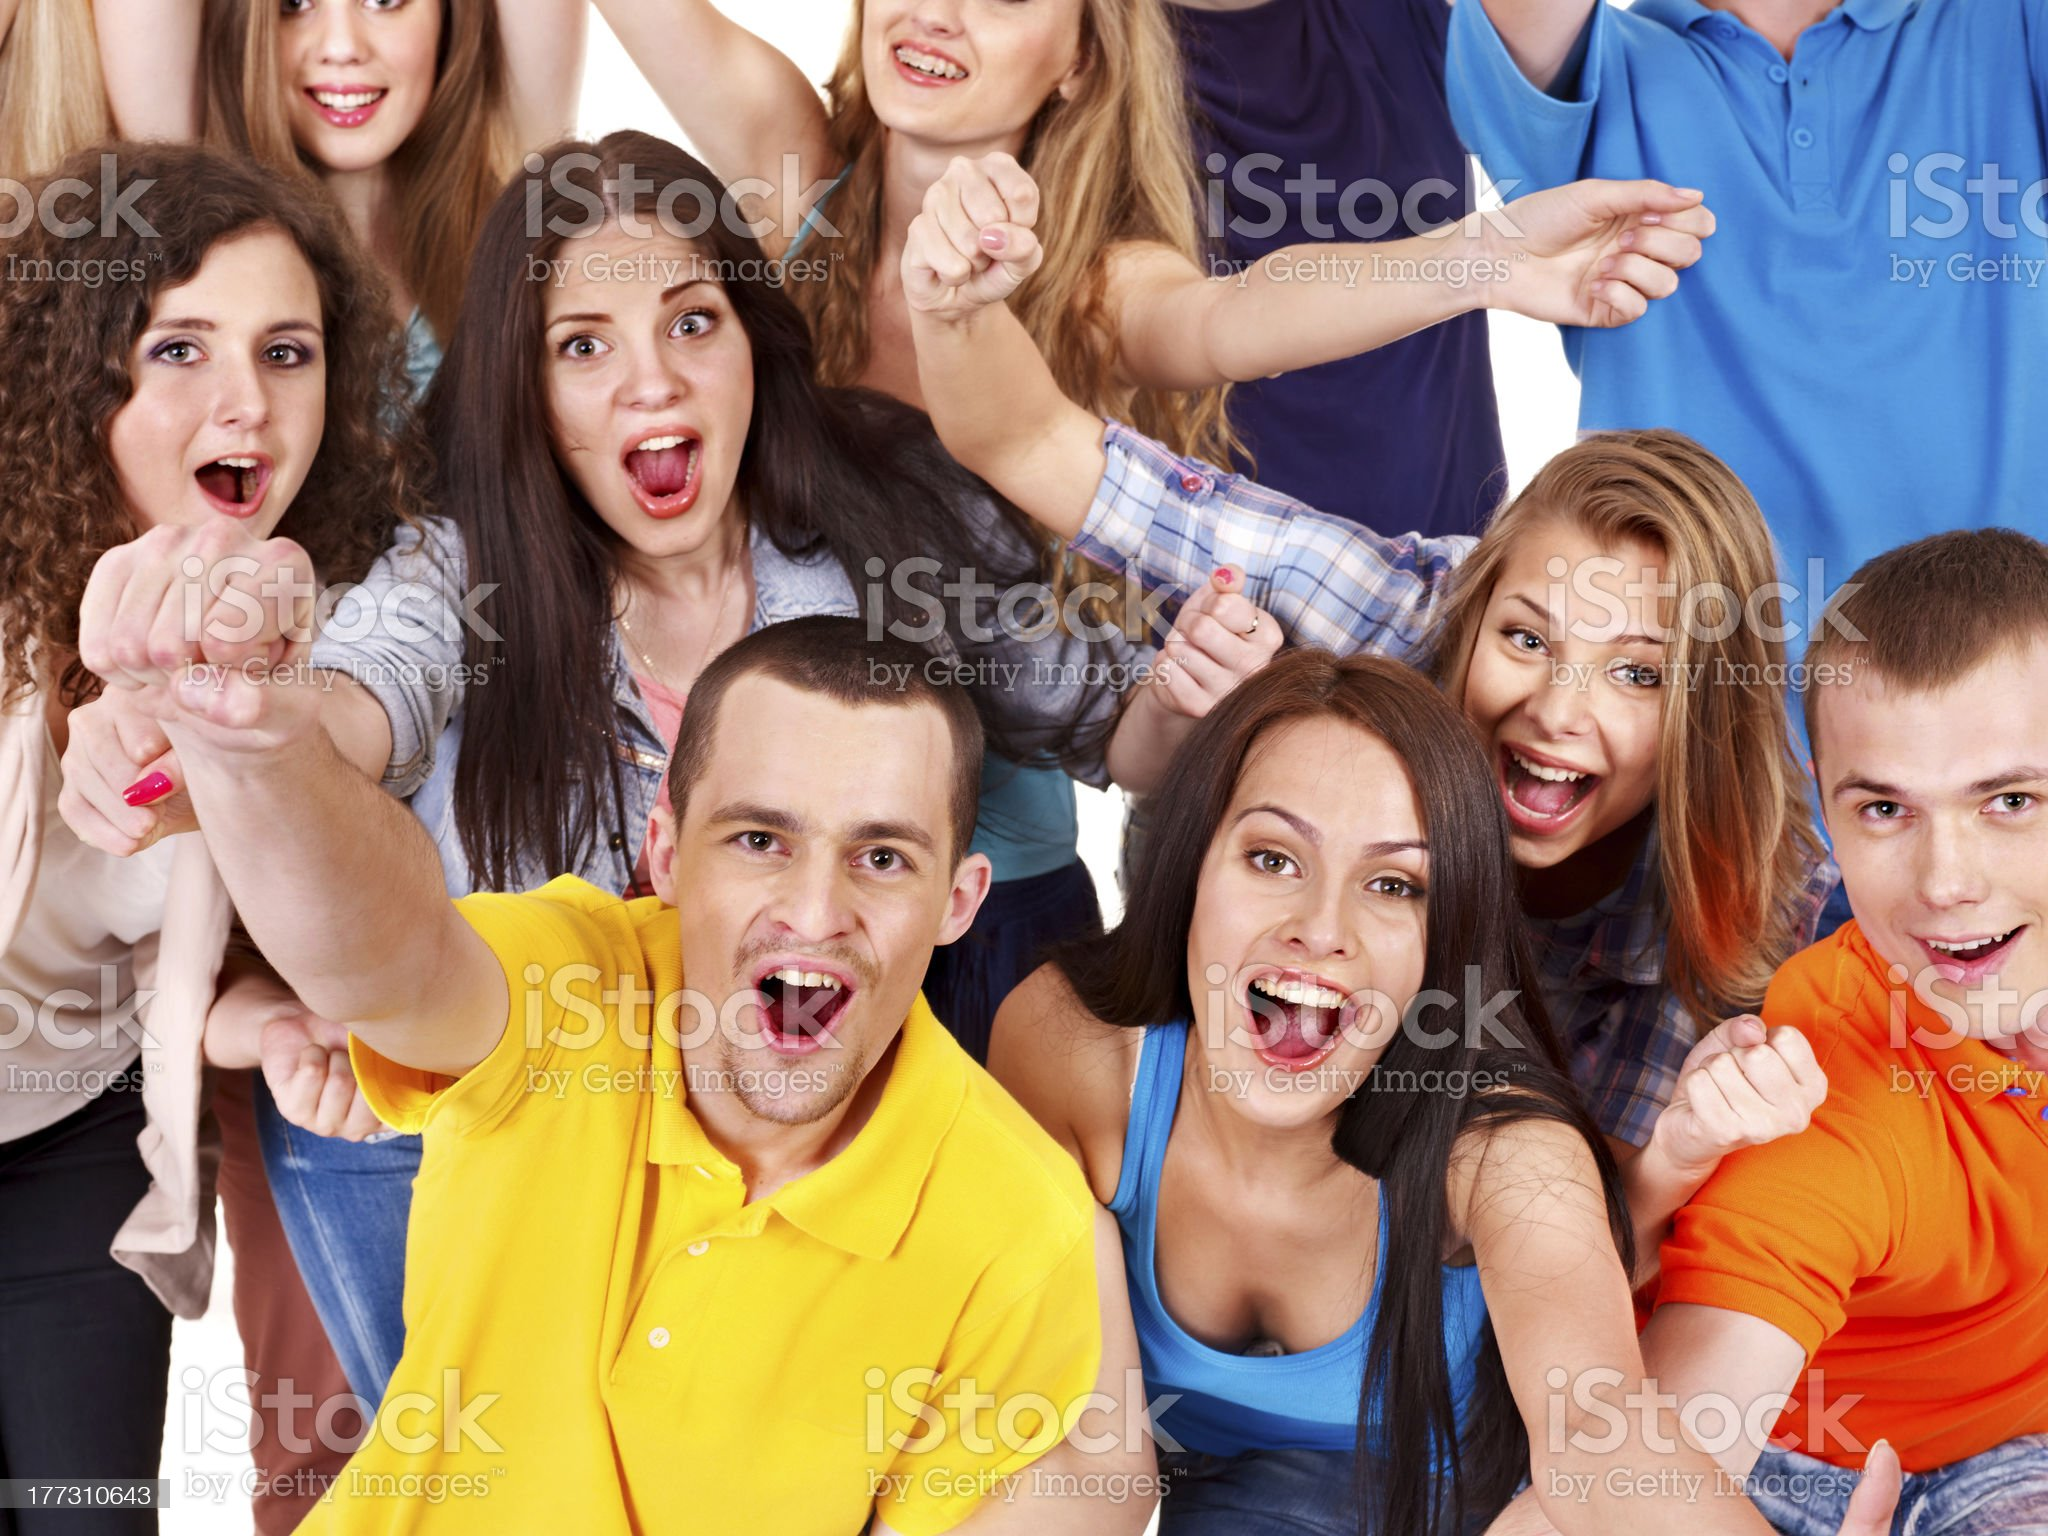 Group sport fan cheer for. royalty-free stock photo